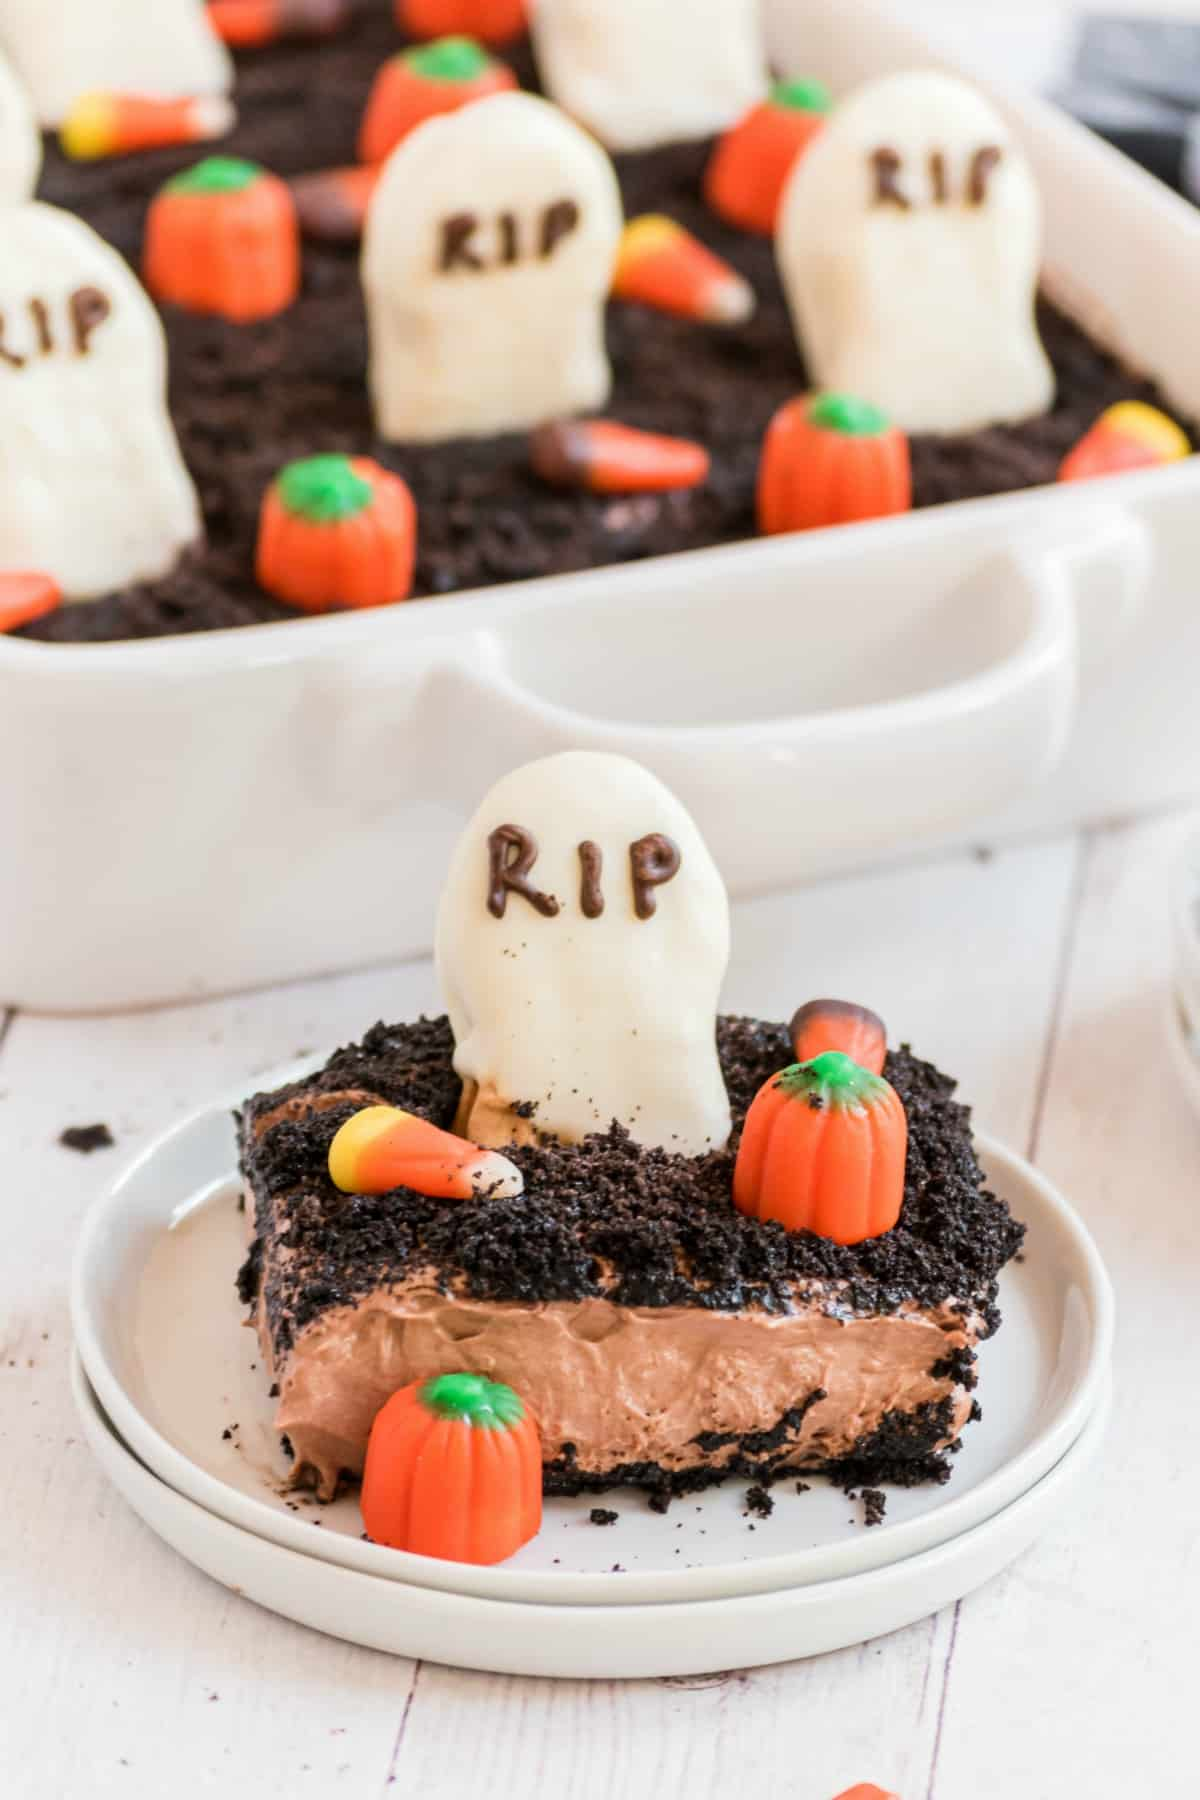 Slice of dirt cake with oreos and topped with a graveyard theme.